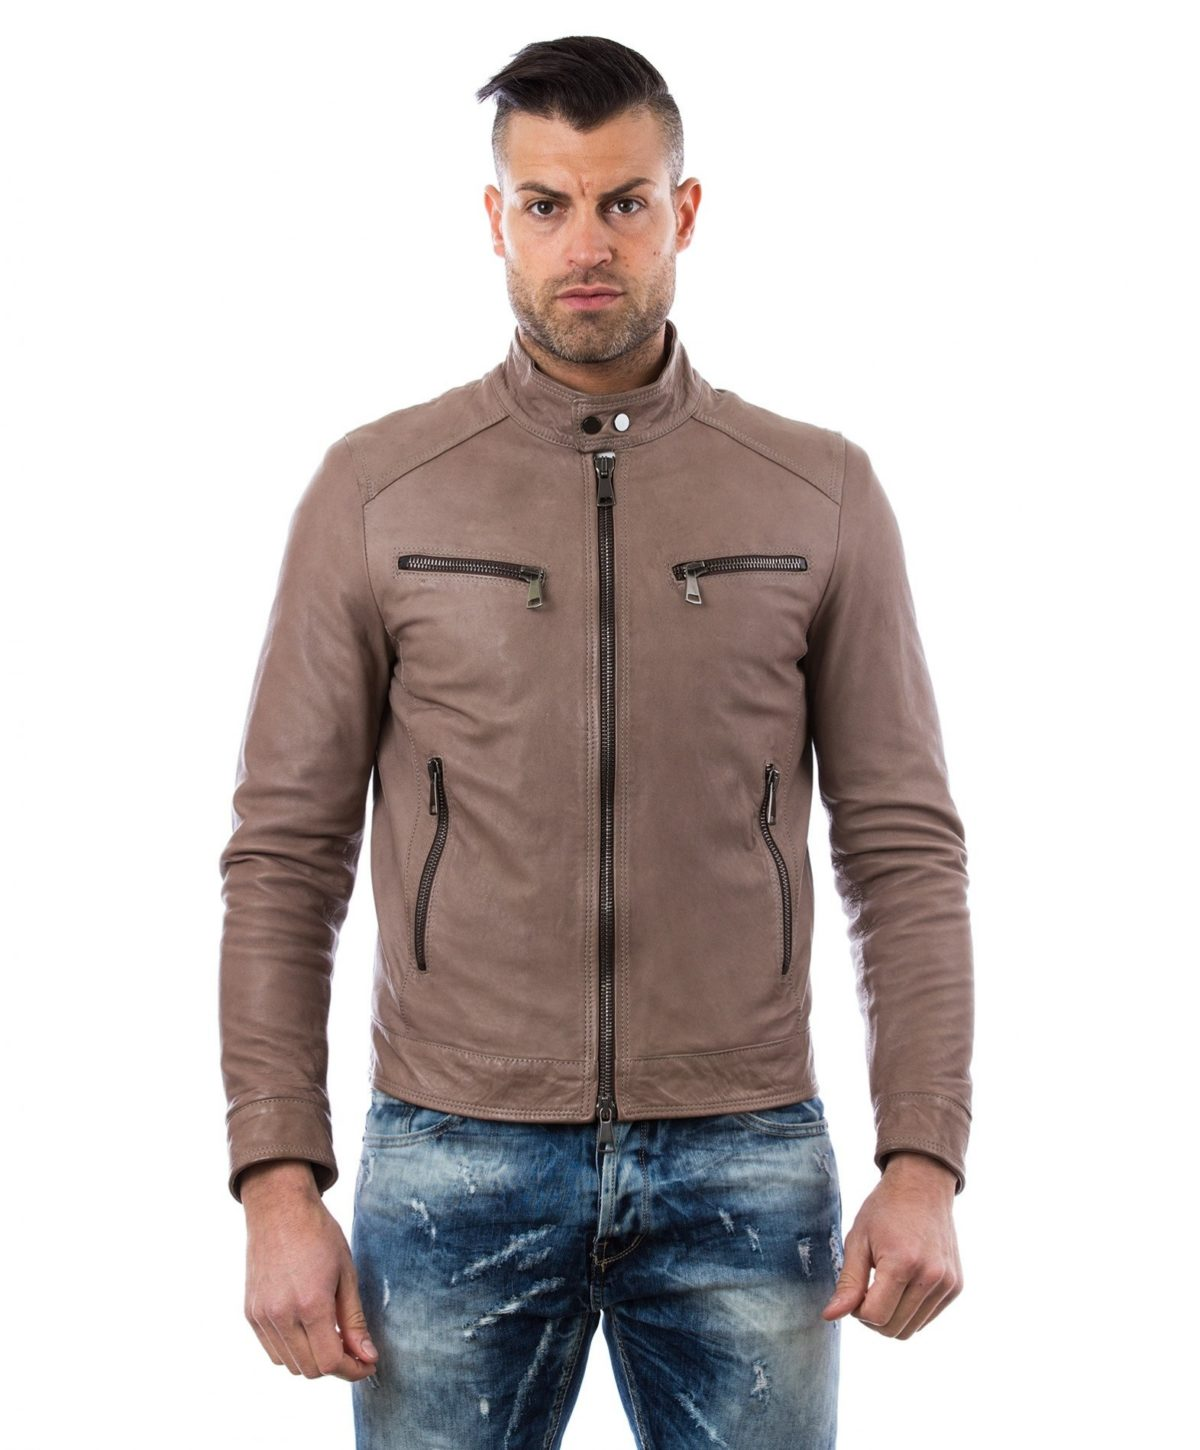 men-s-leather-jacket-genuine-soft-leather-biker-style-collar-mao-gray-color-hamilton